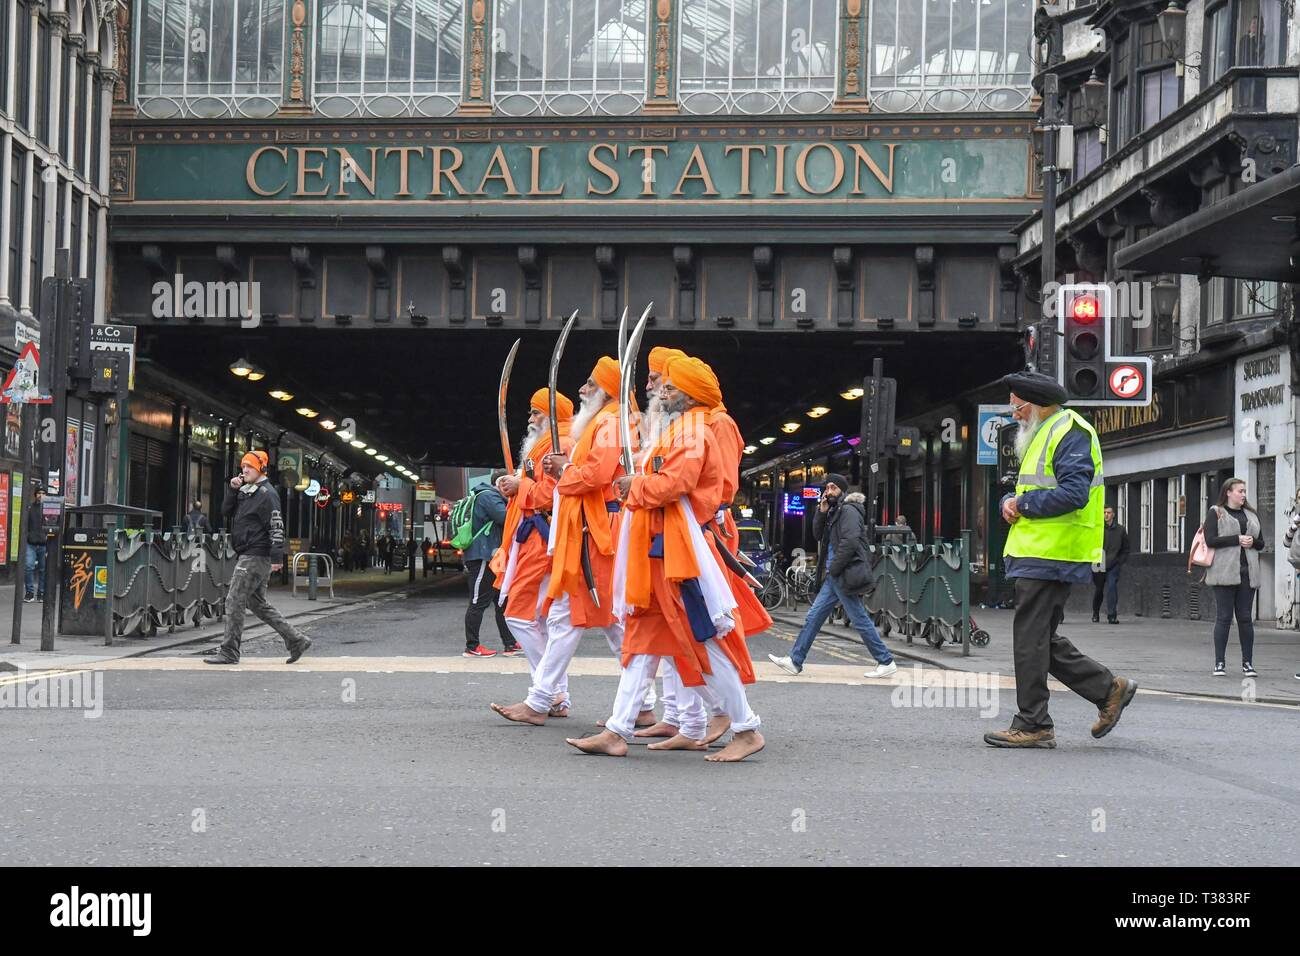 Glasgow, UK. 07th Apr, 2019.  Sikhs in Glasgow celebrating the festival of Vaisakhi (or Baisakhi) with a colourful Nagar Kirtan parade processing around the city's four Gurdwaras or Sikh temples. Credit: Kay Roxby/Alamy Live News Stock Photo